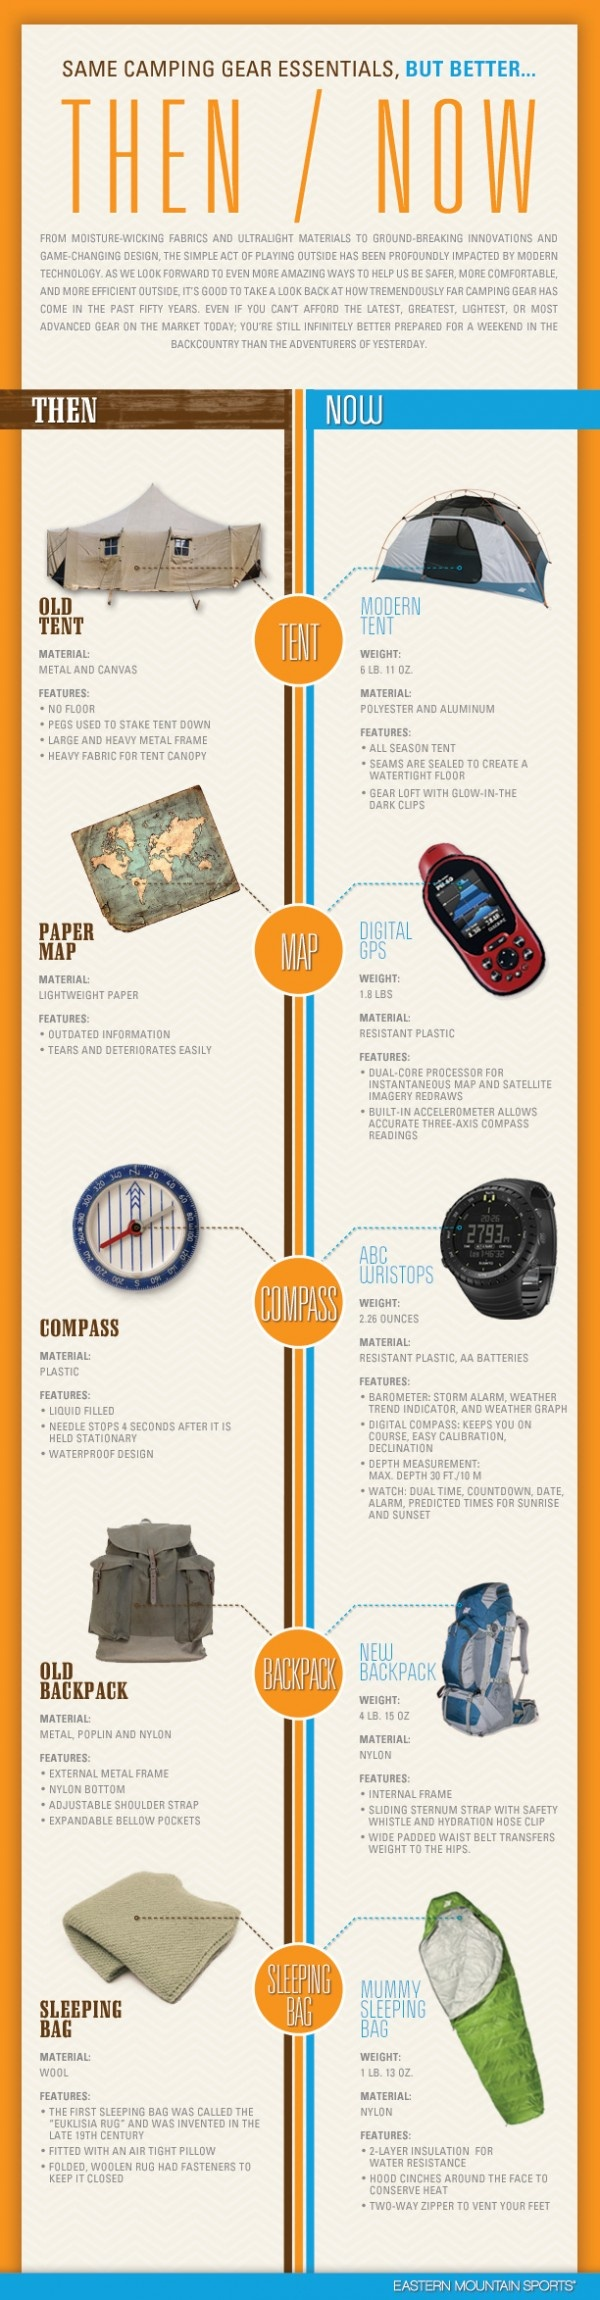 Evolution Of Camping Gear Infographic InfographicGears Infographic, Camps Gears, Outdoor, Better Infographic, Backpacks Essential, Survival Gear, Hiking, Camping Gear, Gears Essential